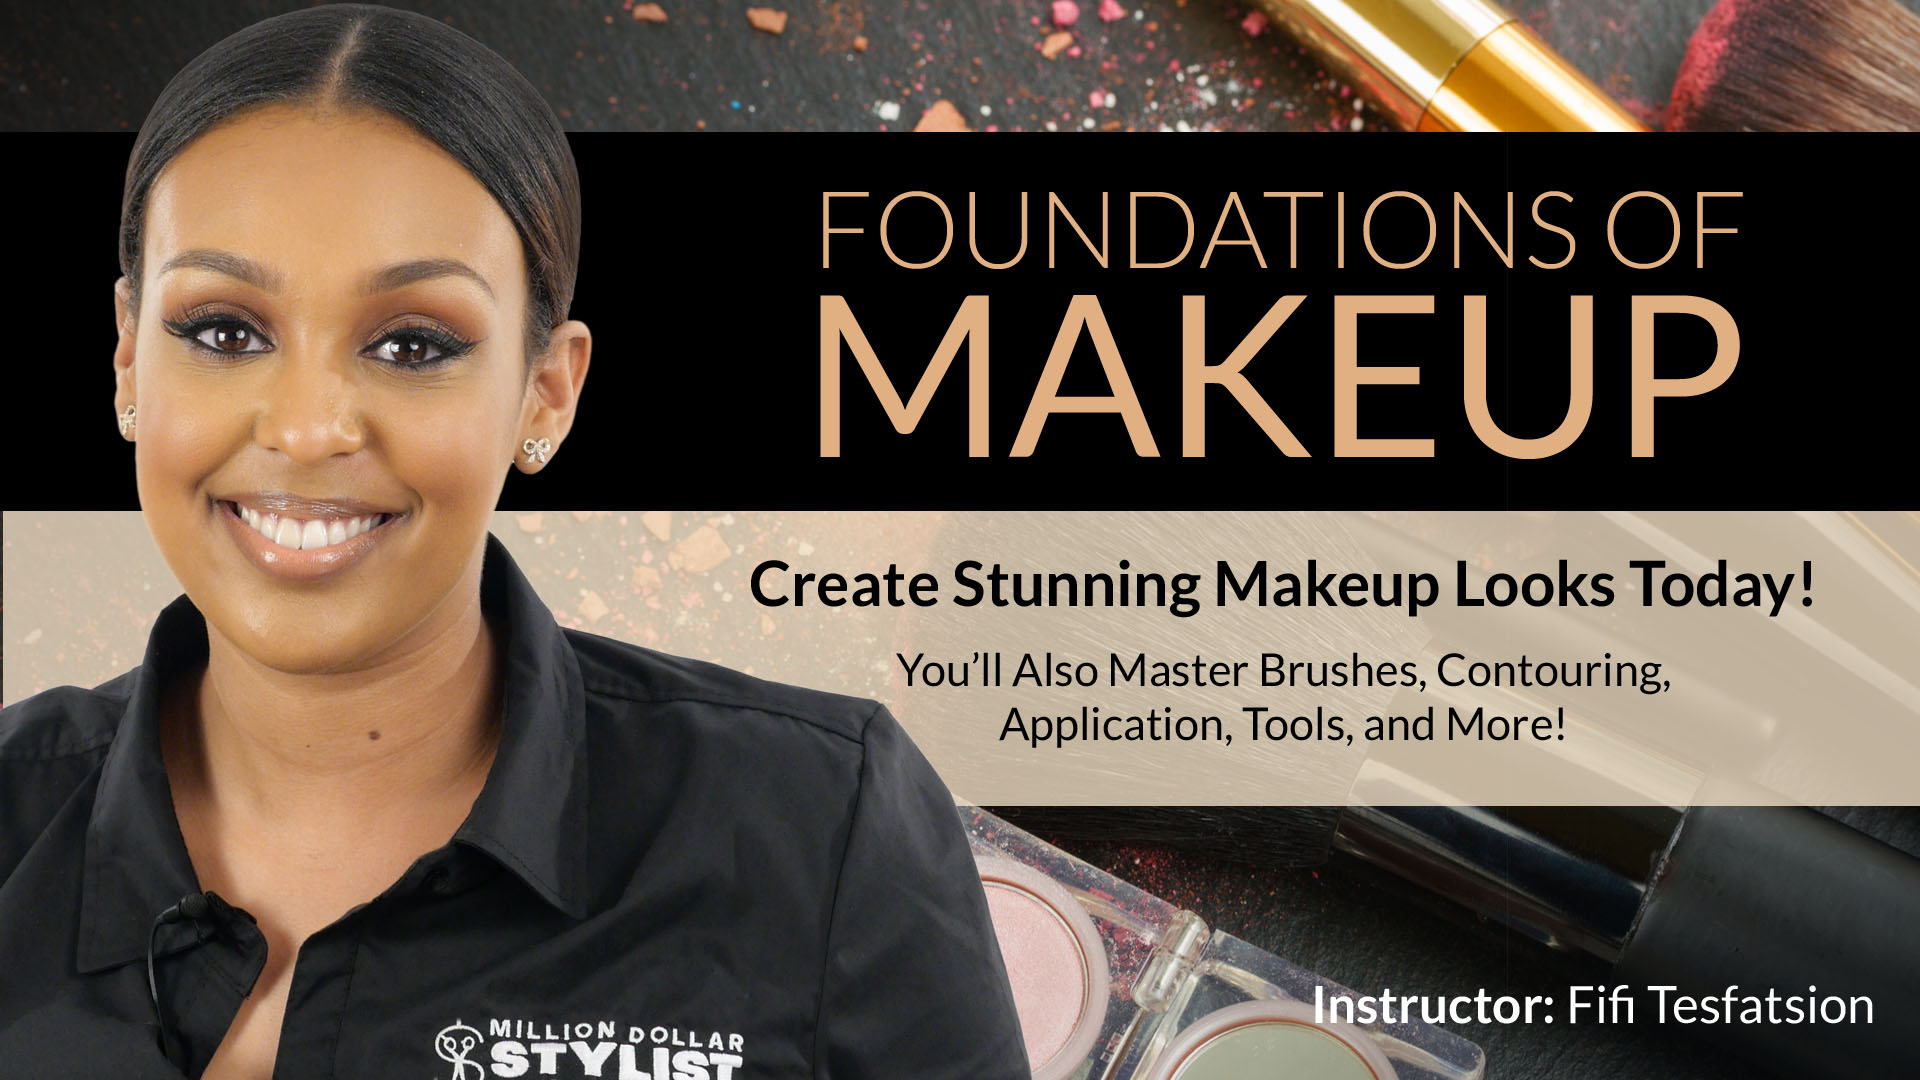 FoundationsOfMakeup